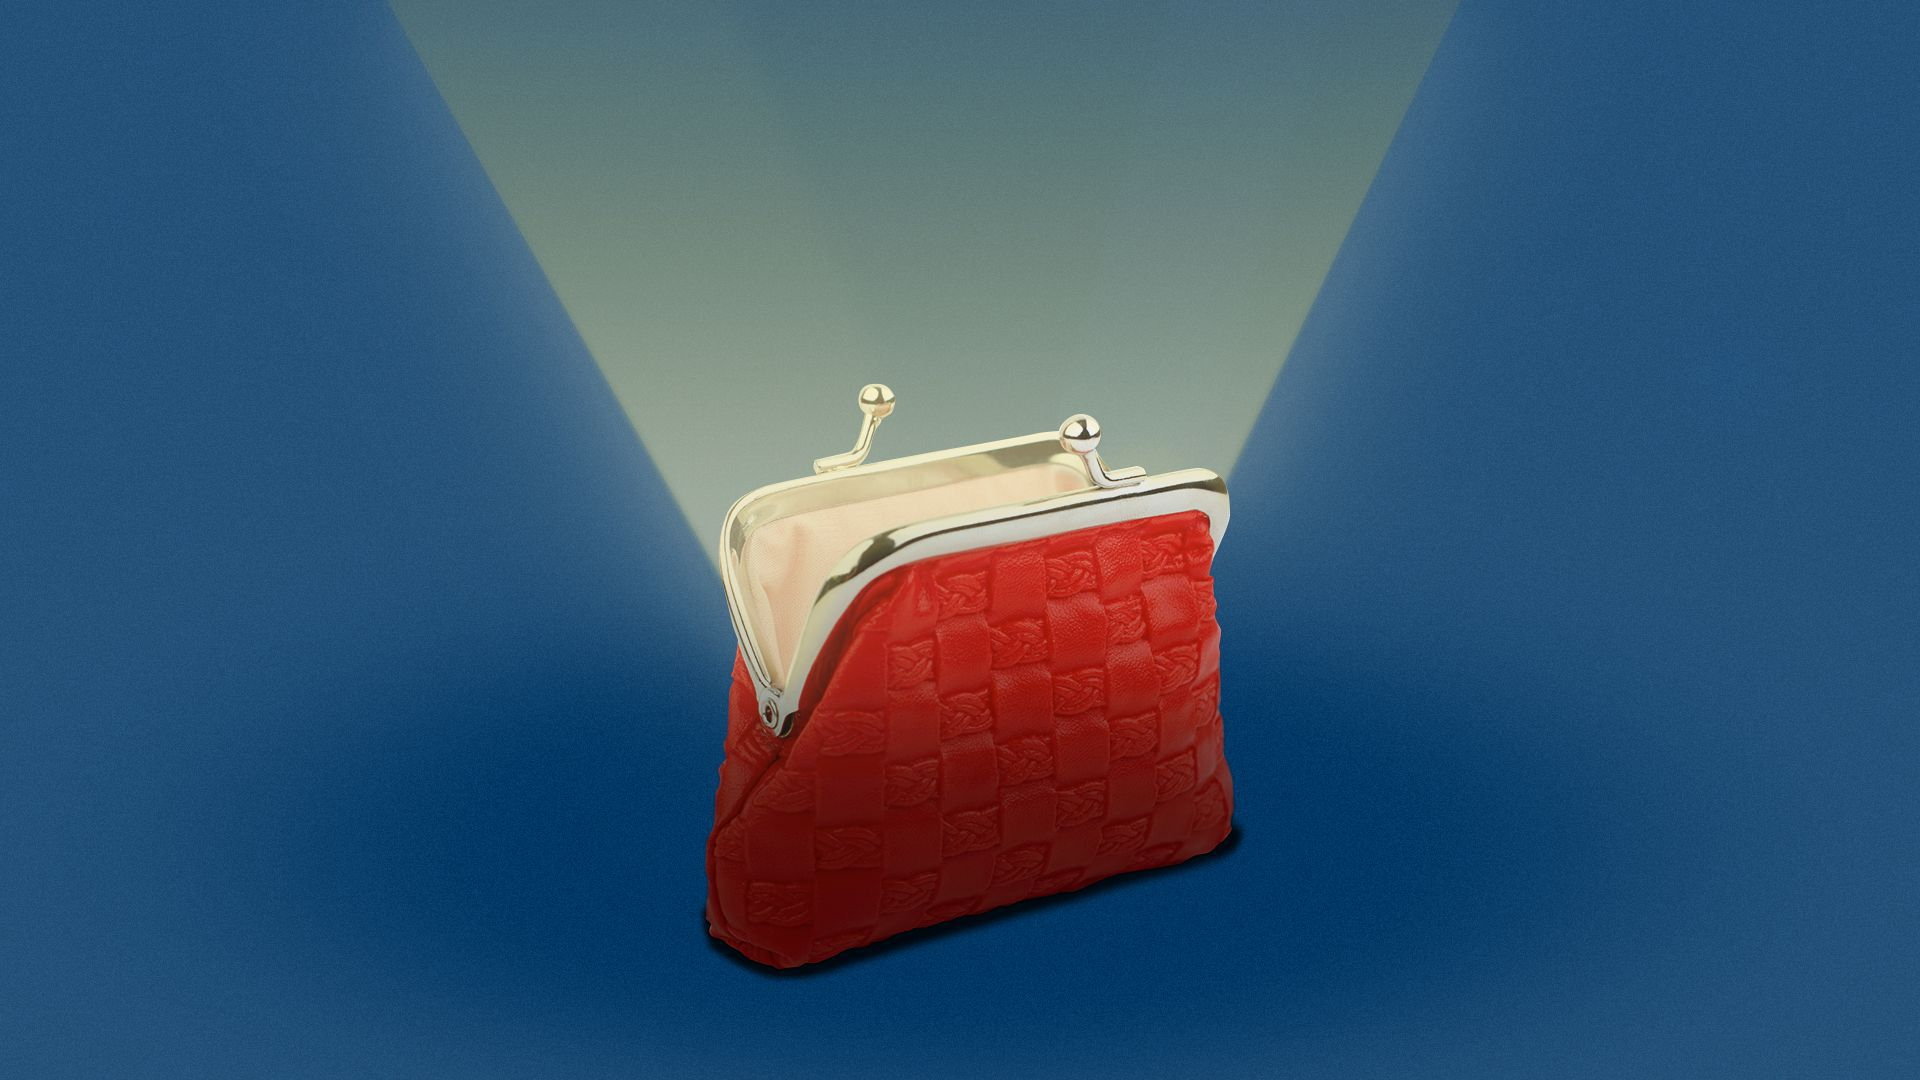 Illustration of a glowing wallet